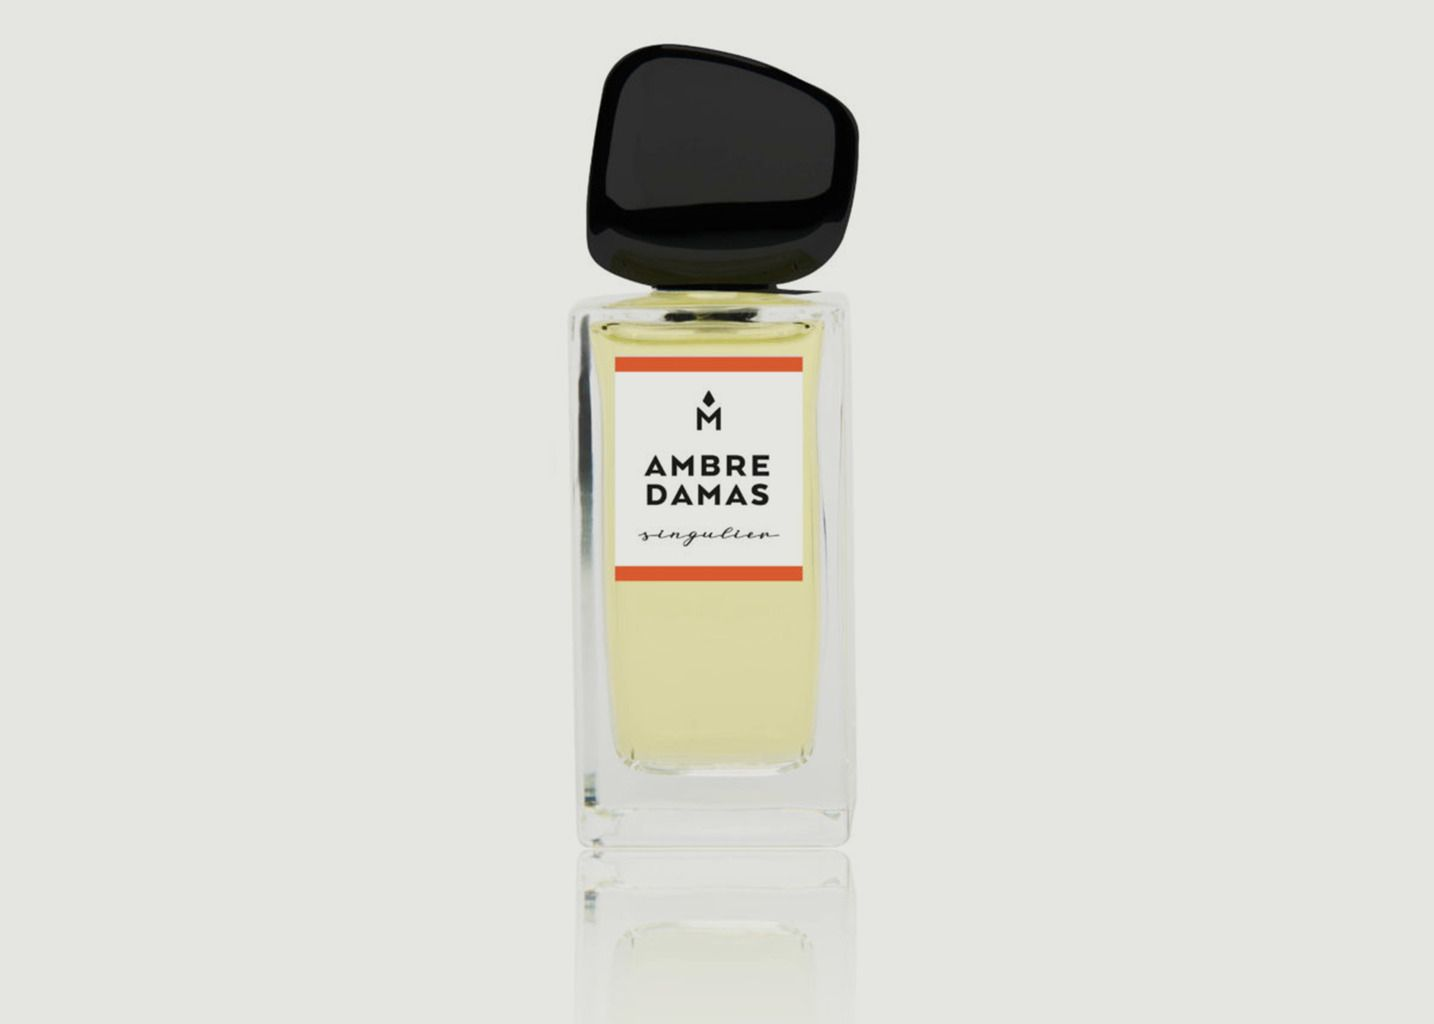 Parfum Ambre Damas 50 ml - Ausmane Paris